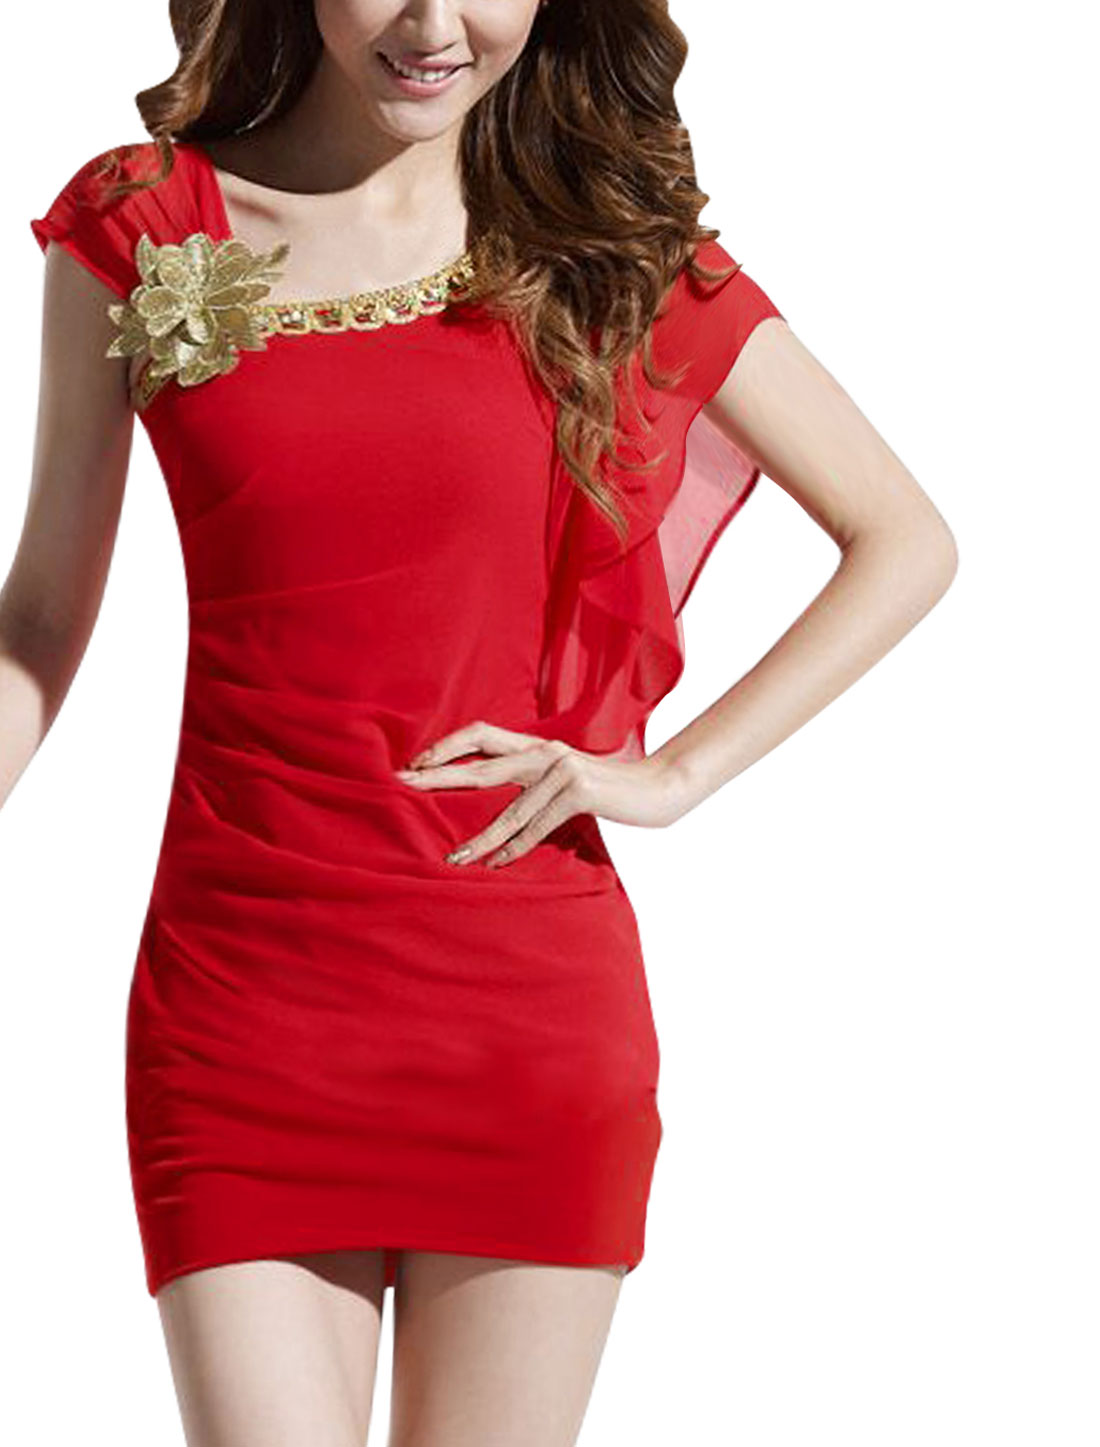 Ladies Asymmetric Sleeve Shirr Design Above Knee Chic Sheath Dress Red XS